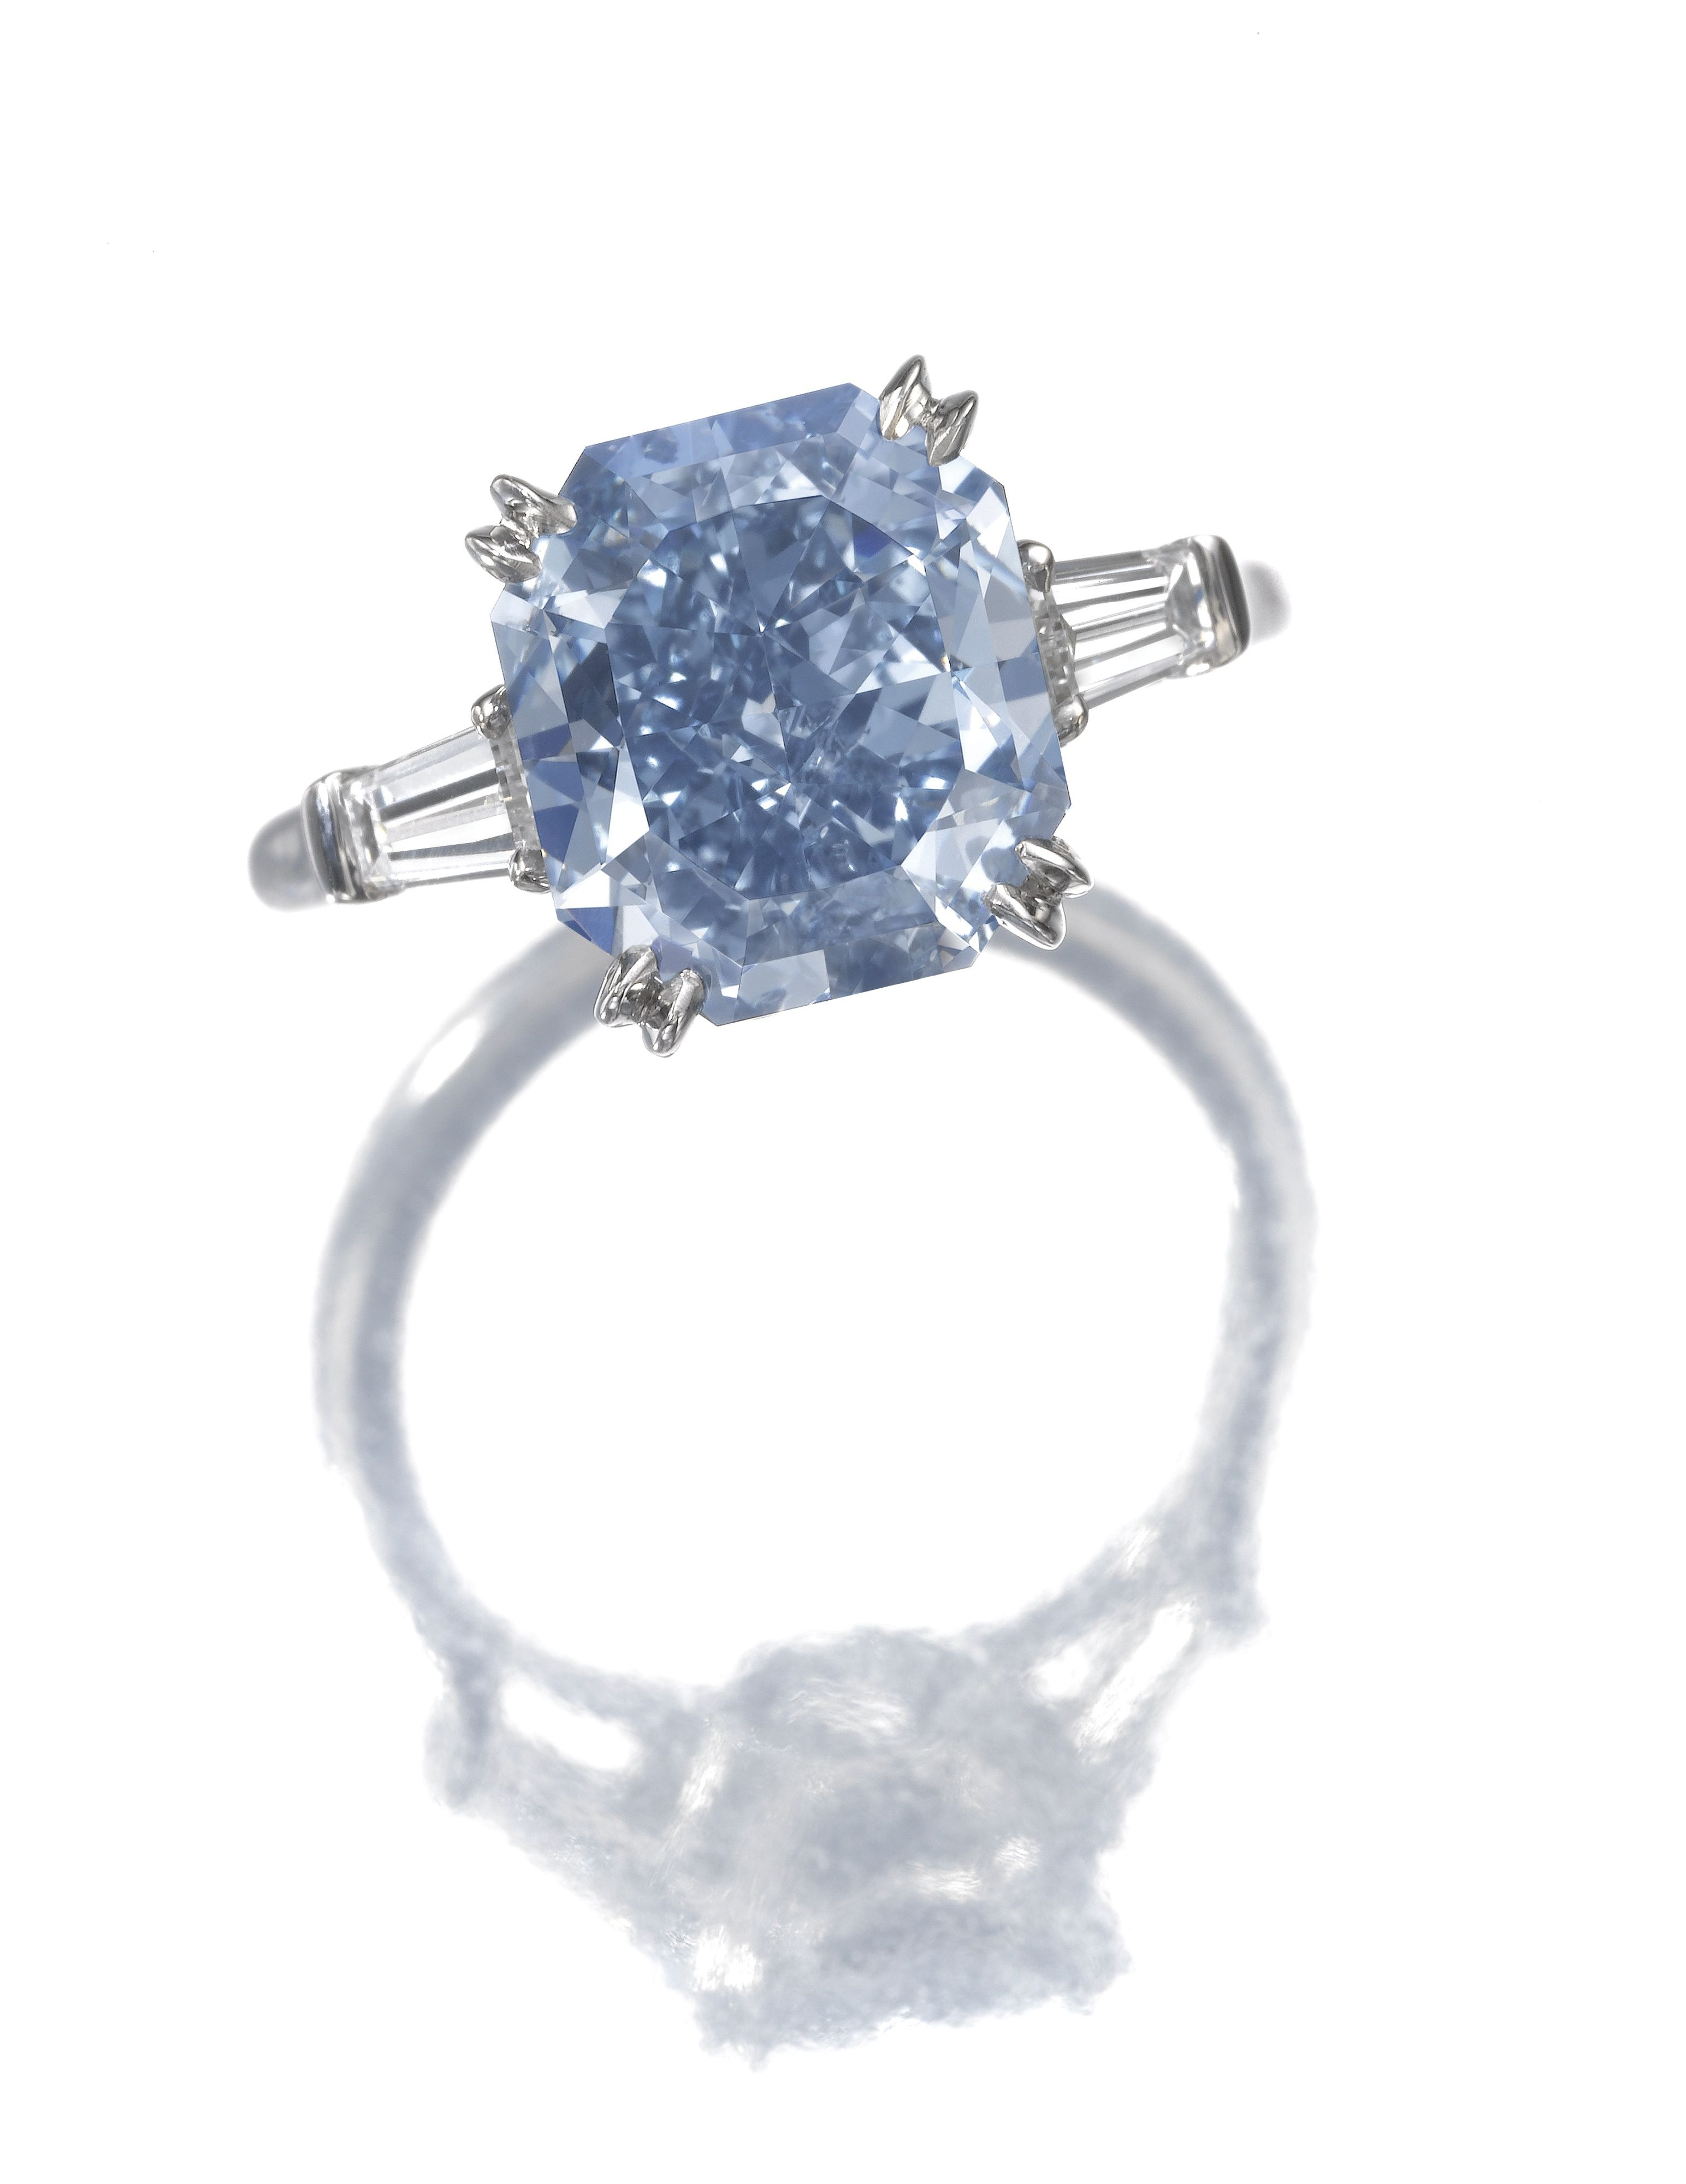 Important Fancy Vivid Blue diamond ring Claw set with a fancy